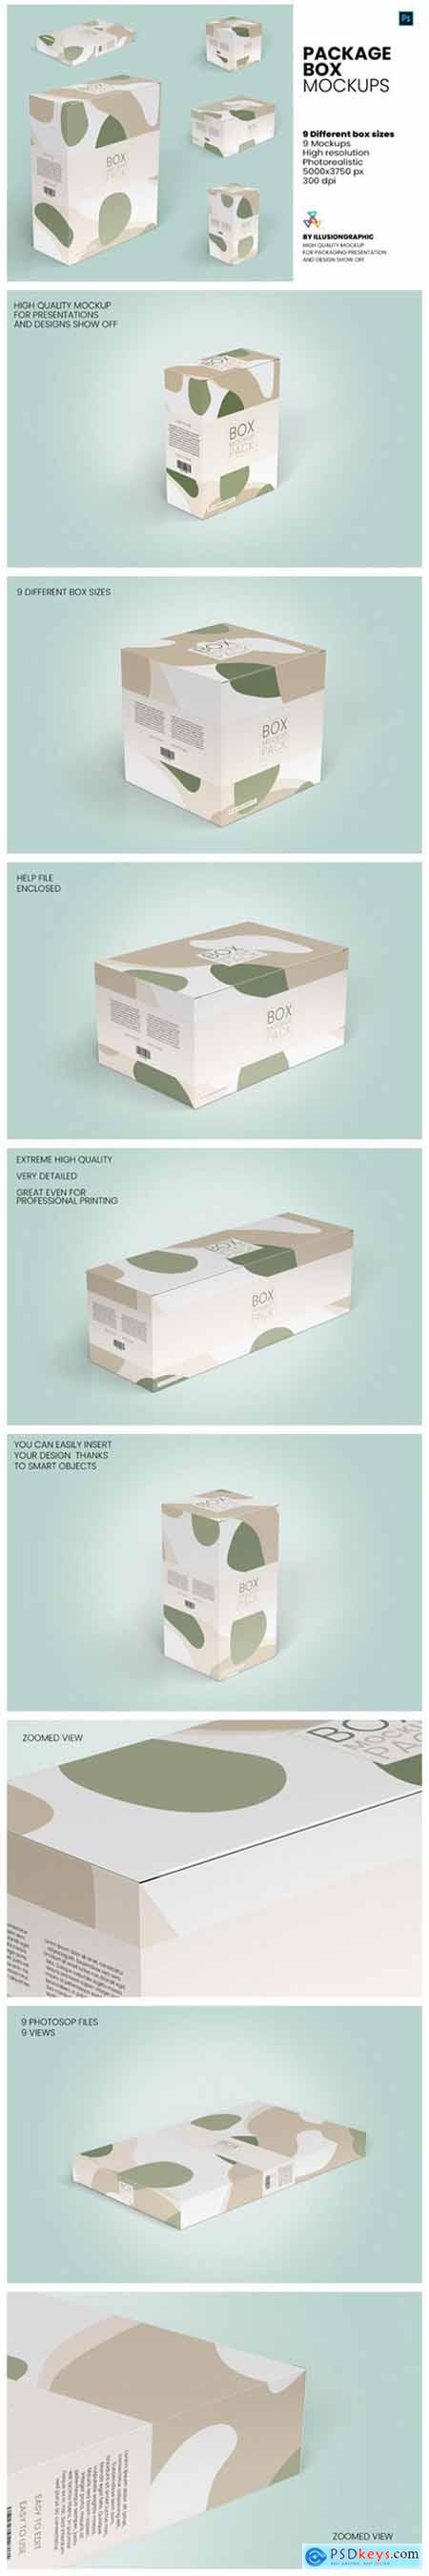 Package Box Mockups - 9 Box Sizes 7967175